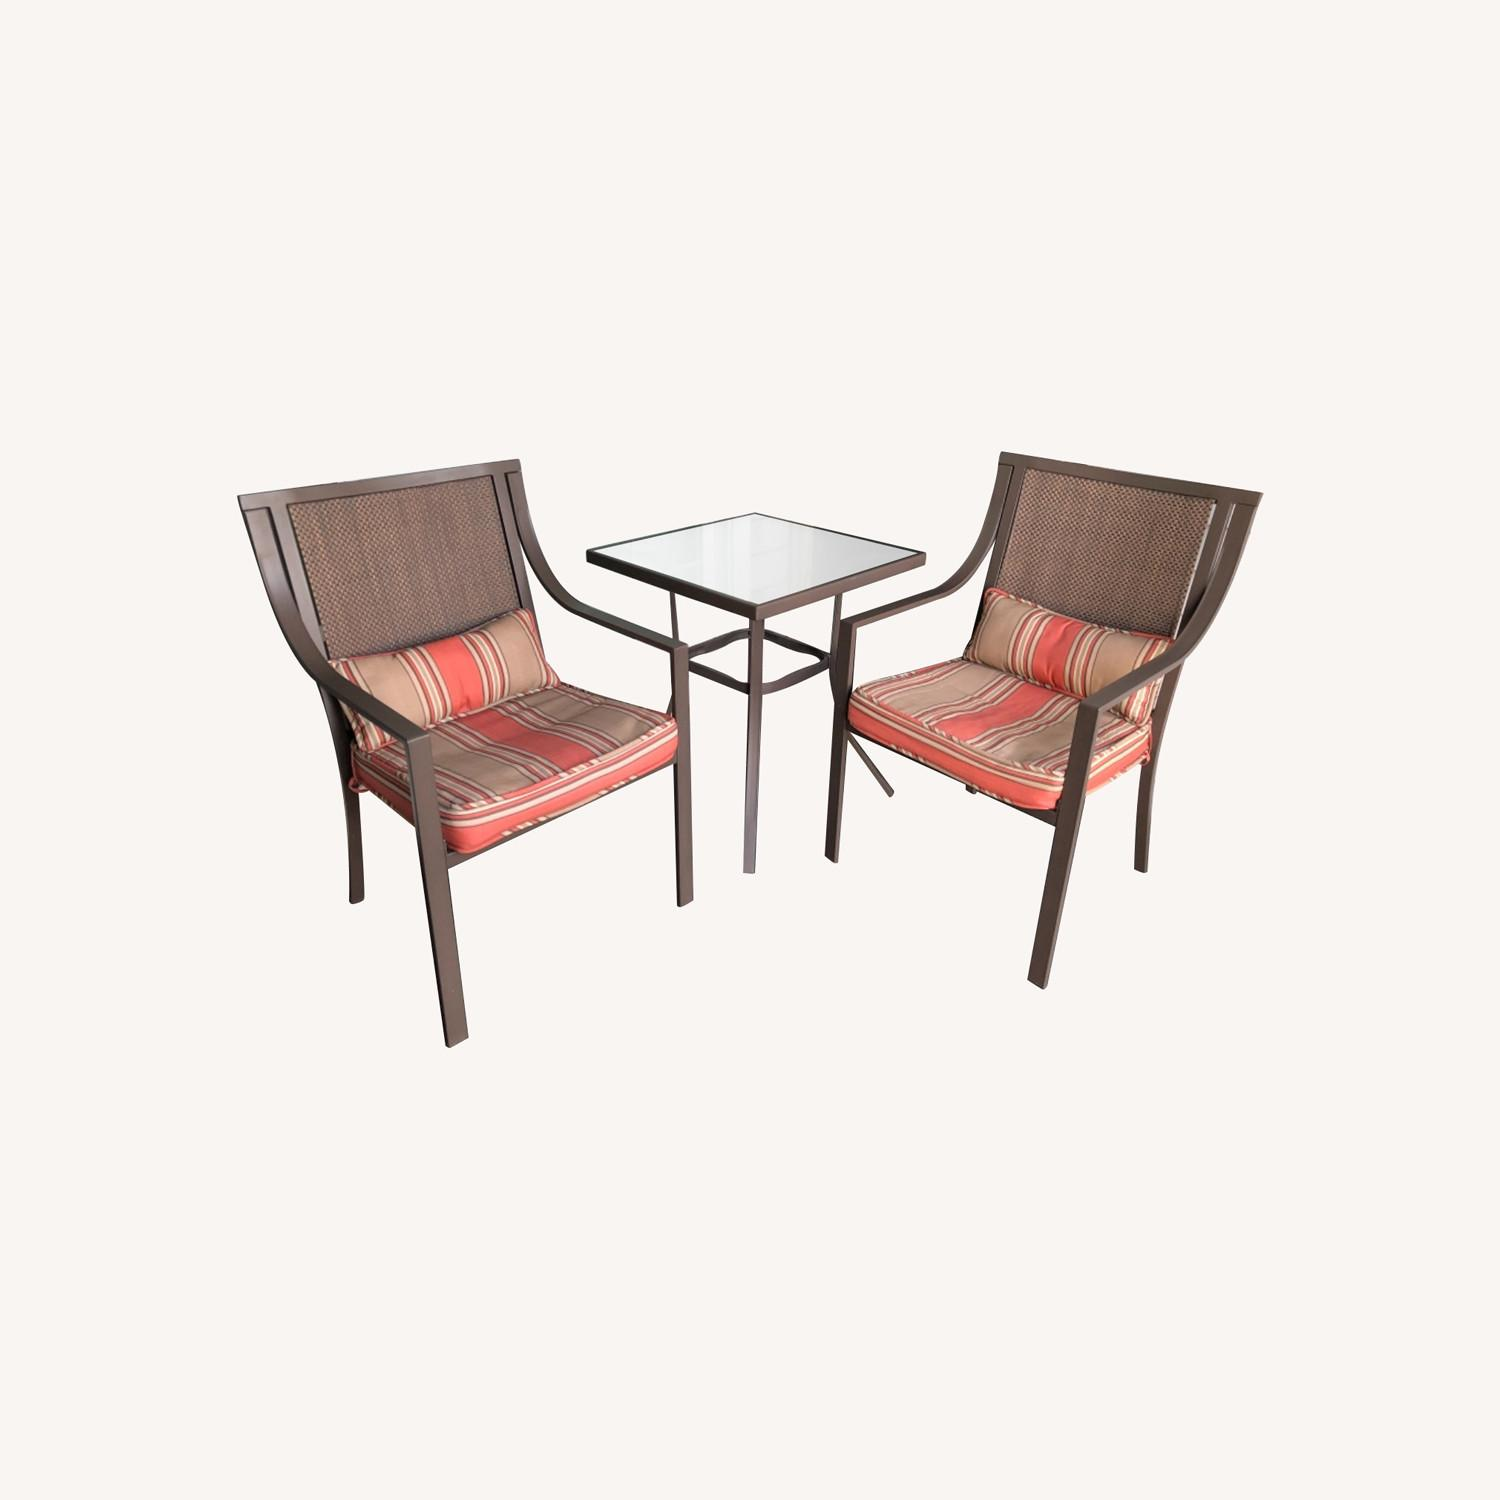 Outdoor Patio Furniture Set - image-0